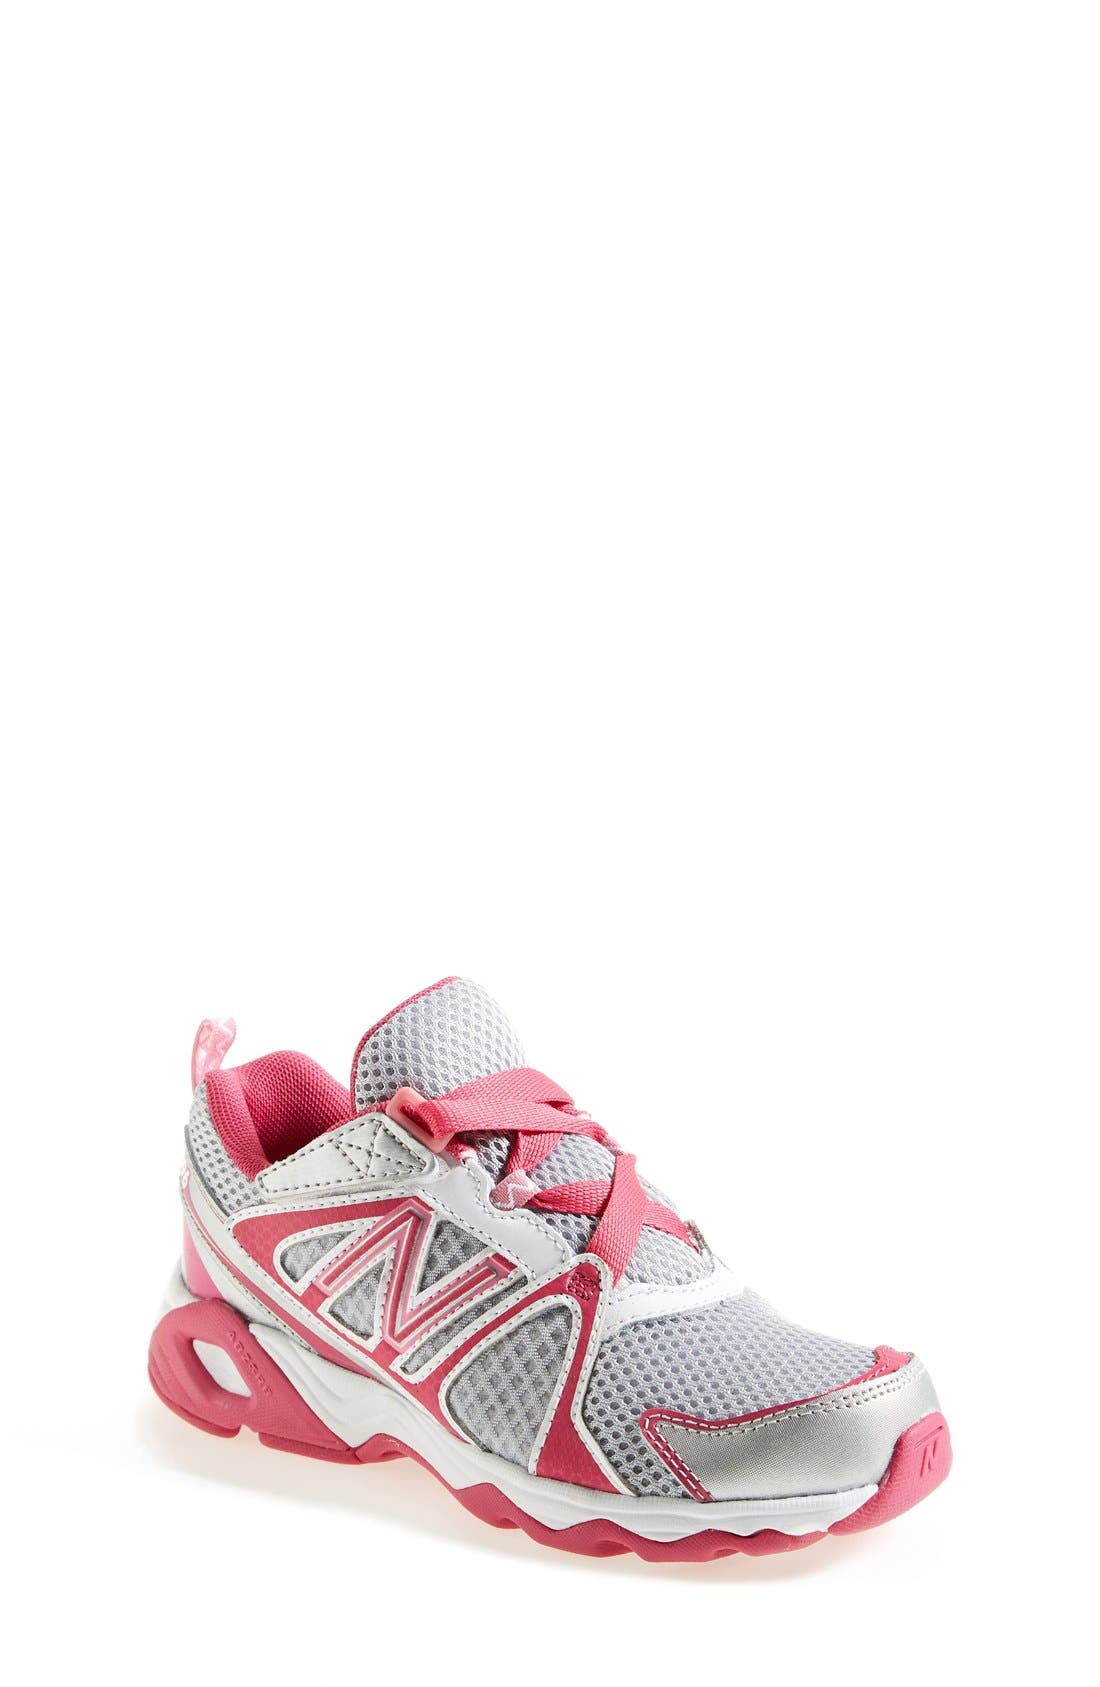 Main Image - New Balance '696' Athletic Shoe (Toddler, Little Kid & Big Kid) (Online Only)